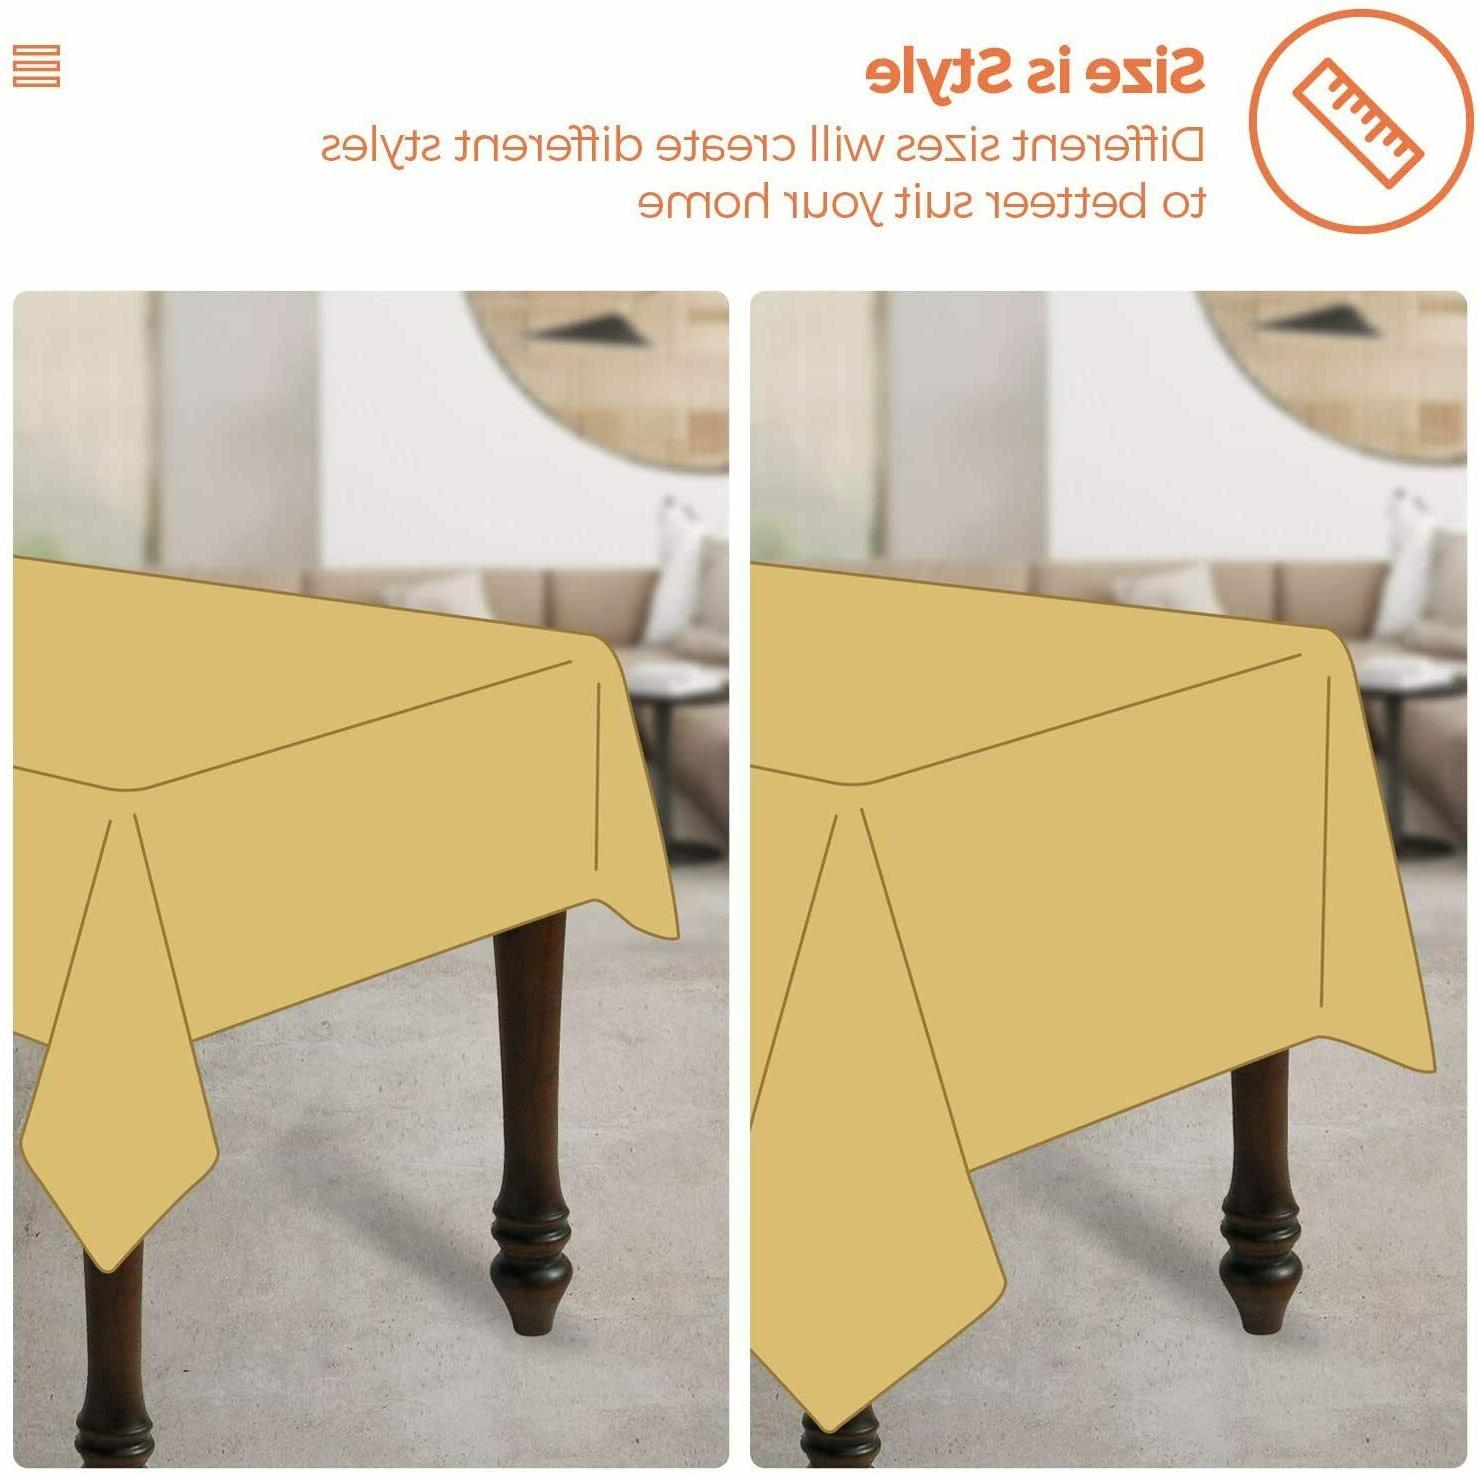 Tablecloth, Rectangle Cotton Linen Wrinkle Anti-Fading Embroide